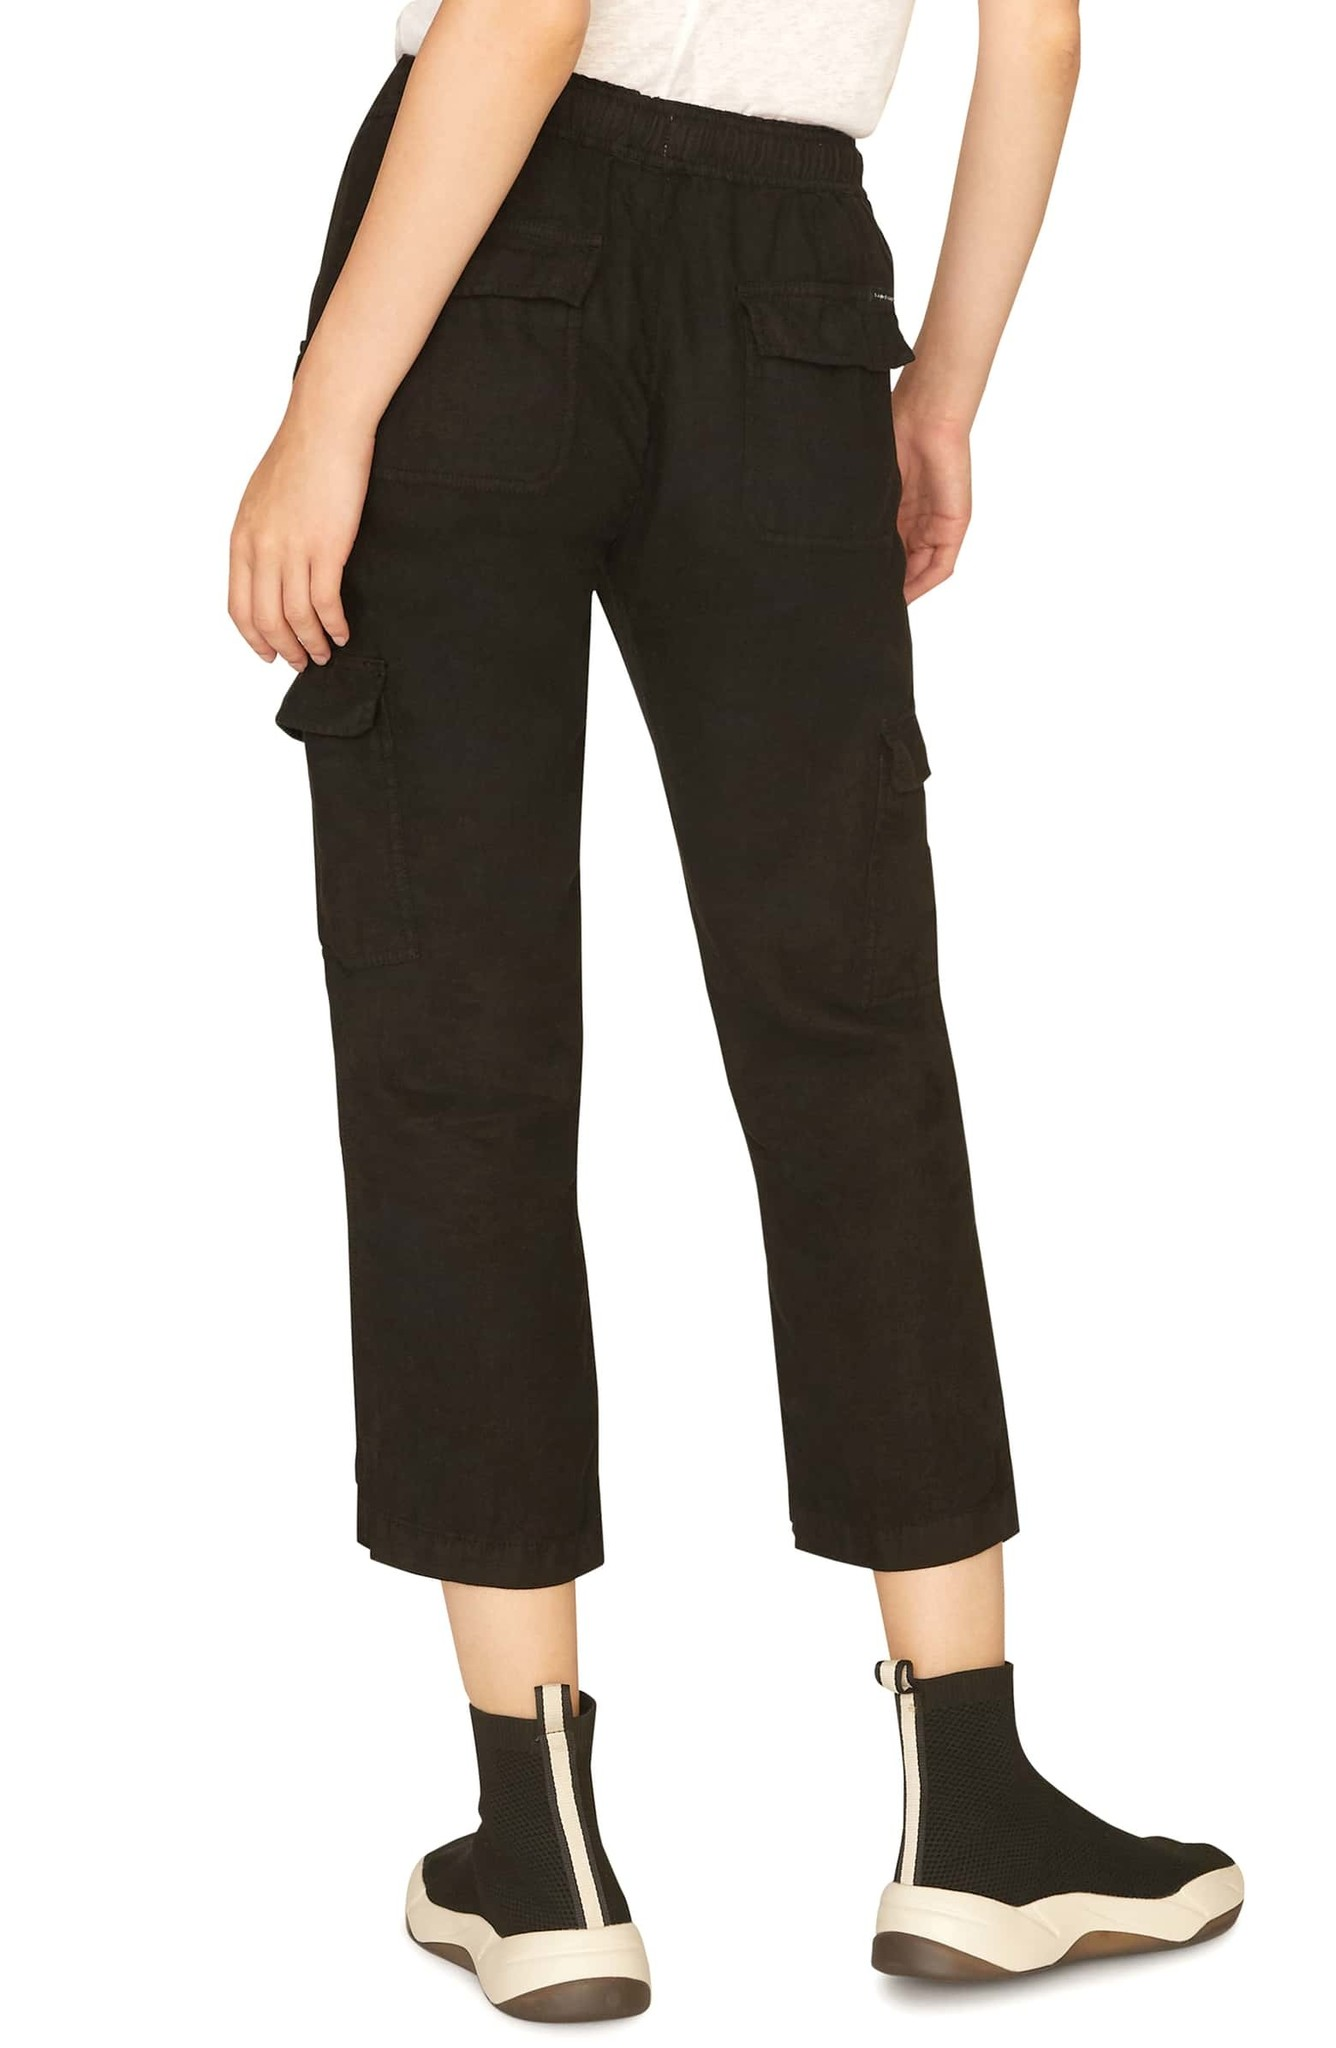 Sanctuary Clothing Discoverer Pull On Cargo Pant